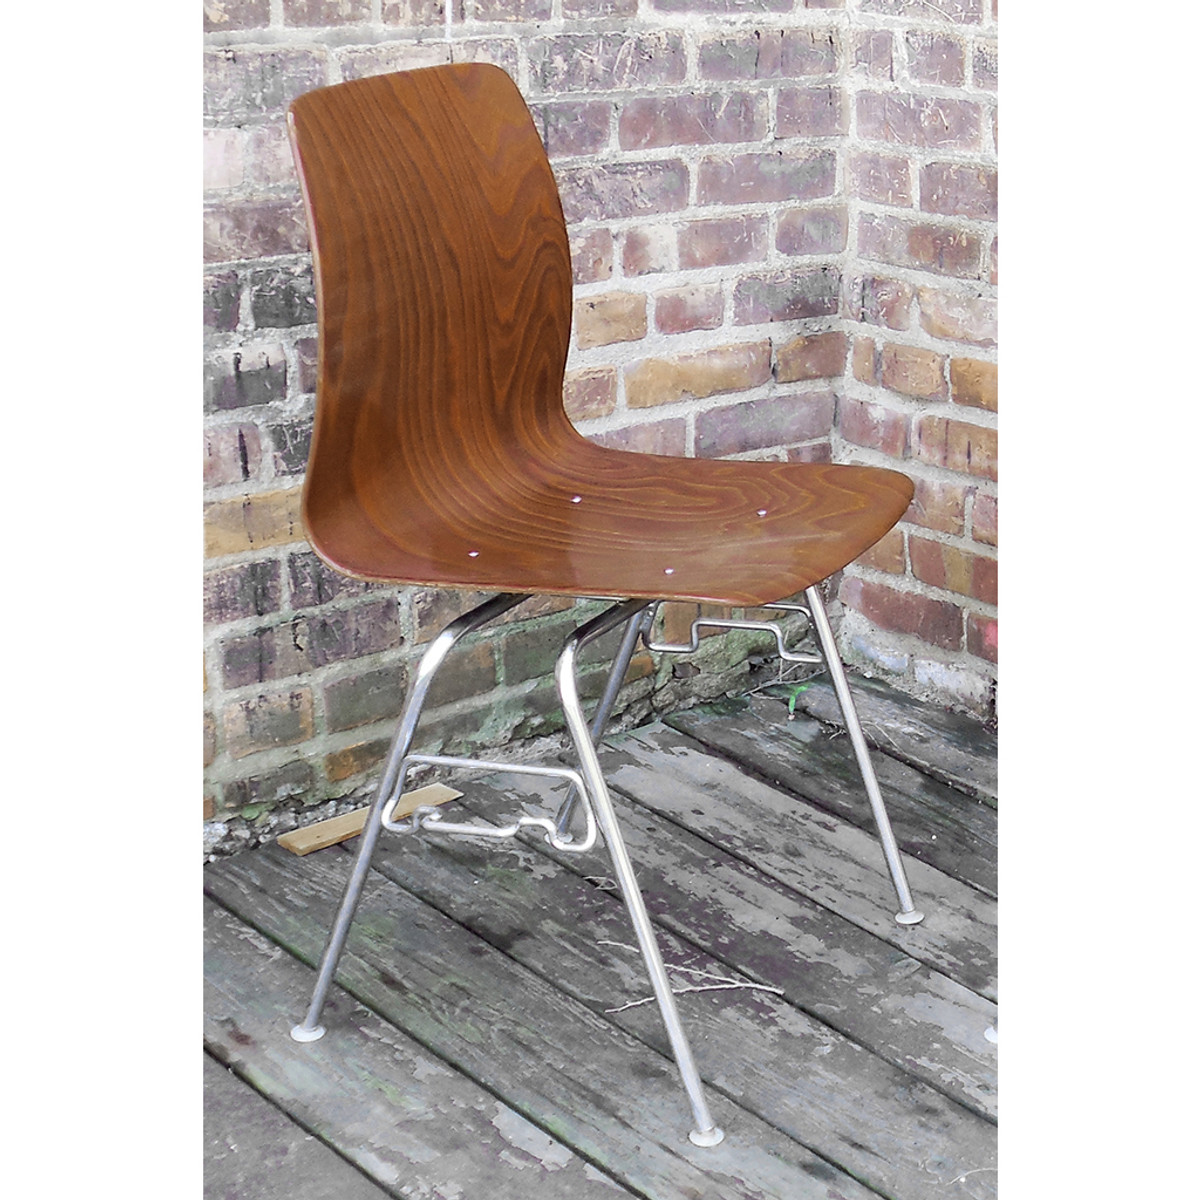 F14053 - Vintage Mid Century Modern Bent Plywood Chair